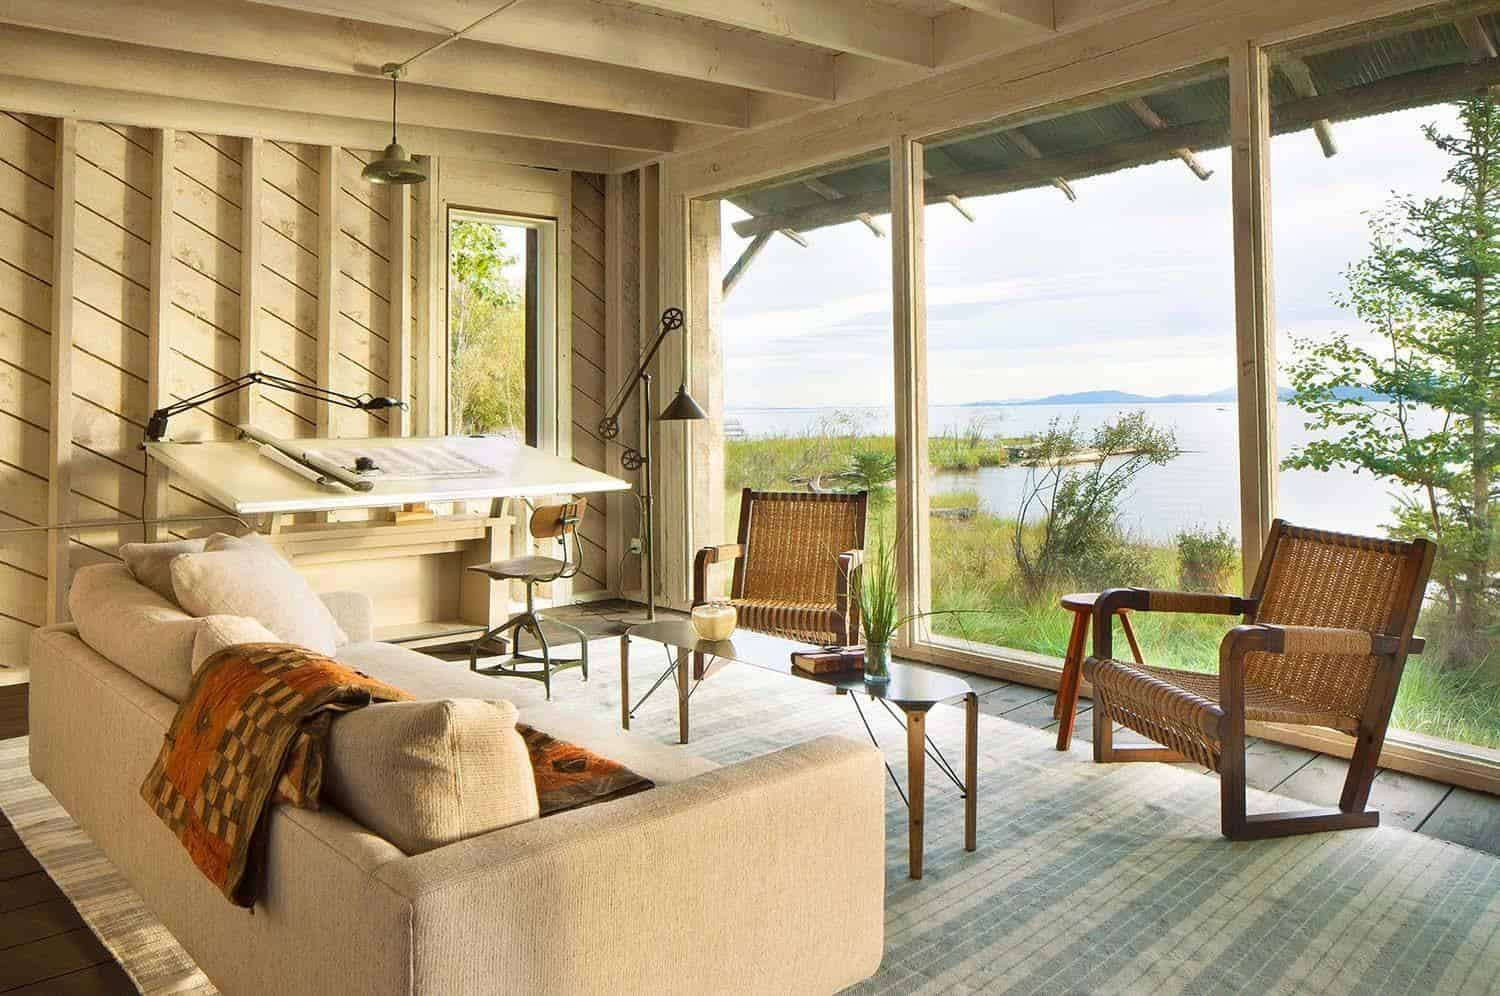 Modern-rustic cabin in Montana offers captivating lakeside views